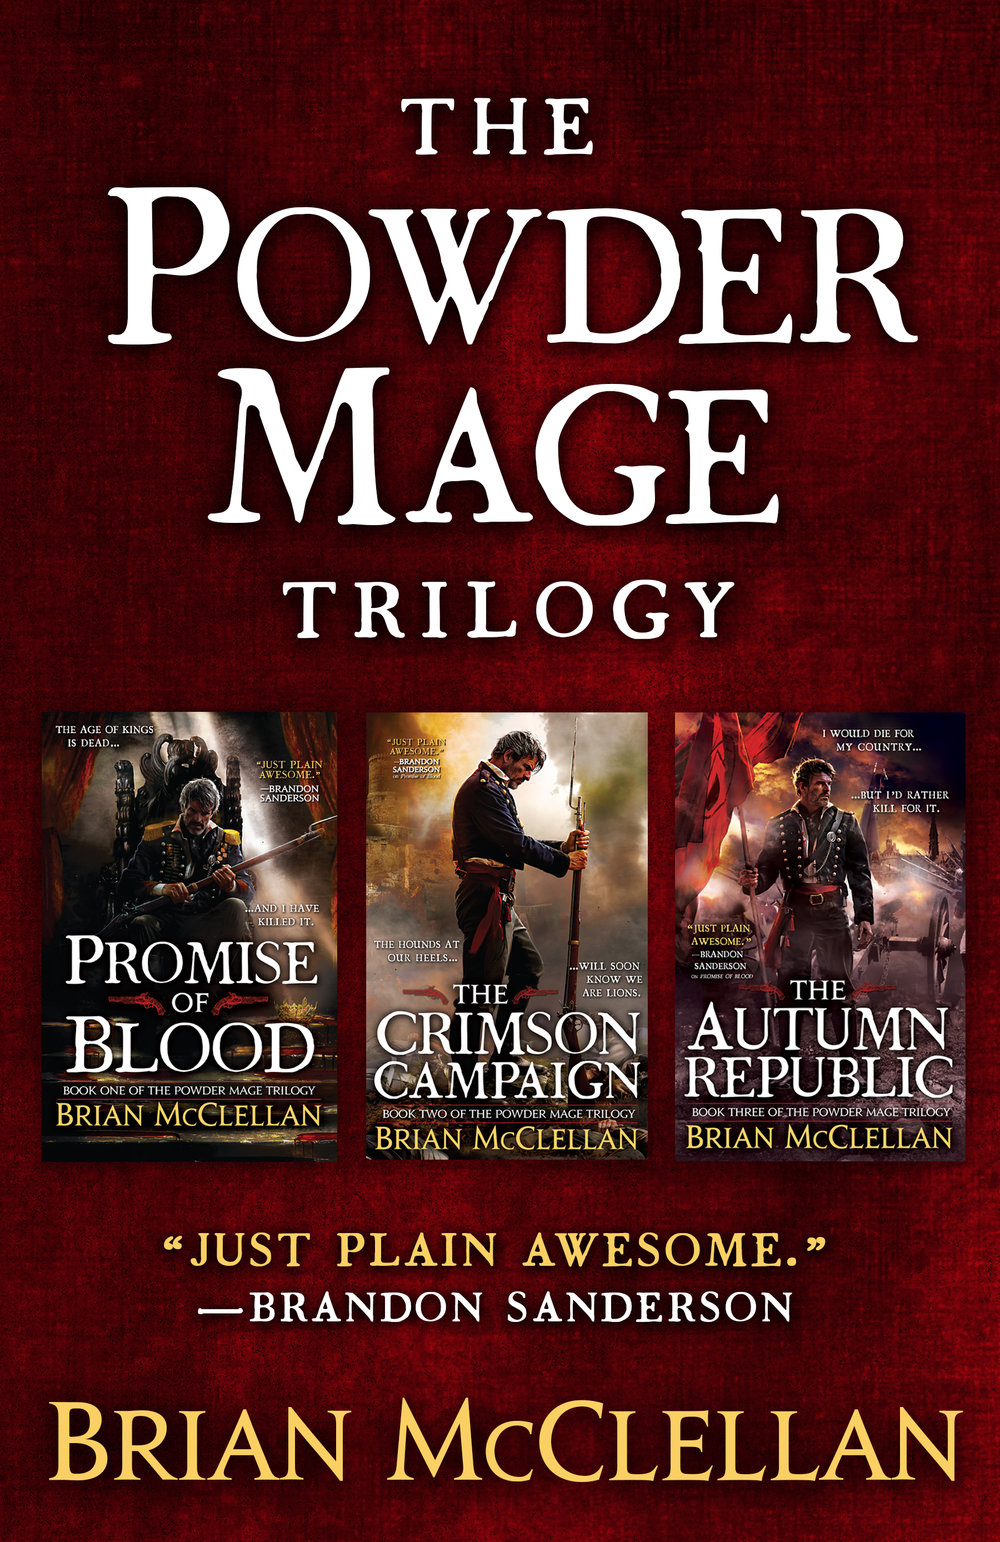 PowderMage-Omni-Cover-1[2].jpg